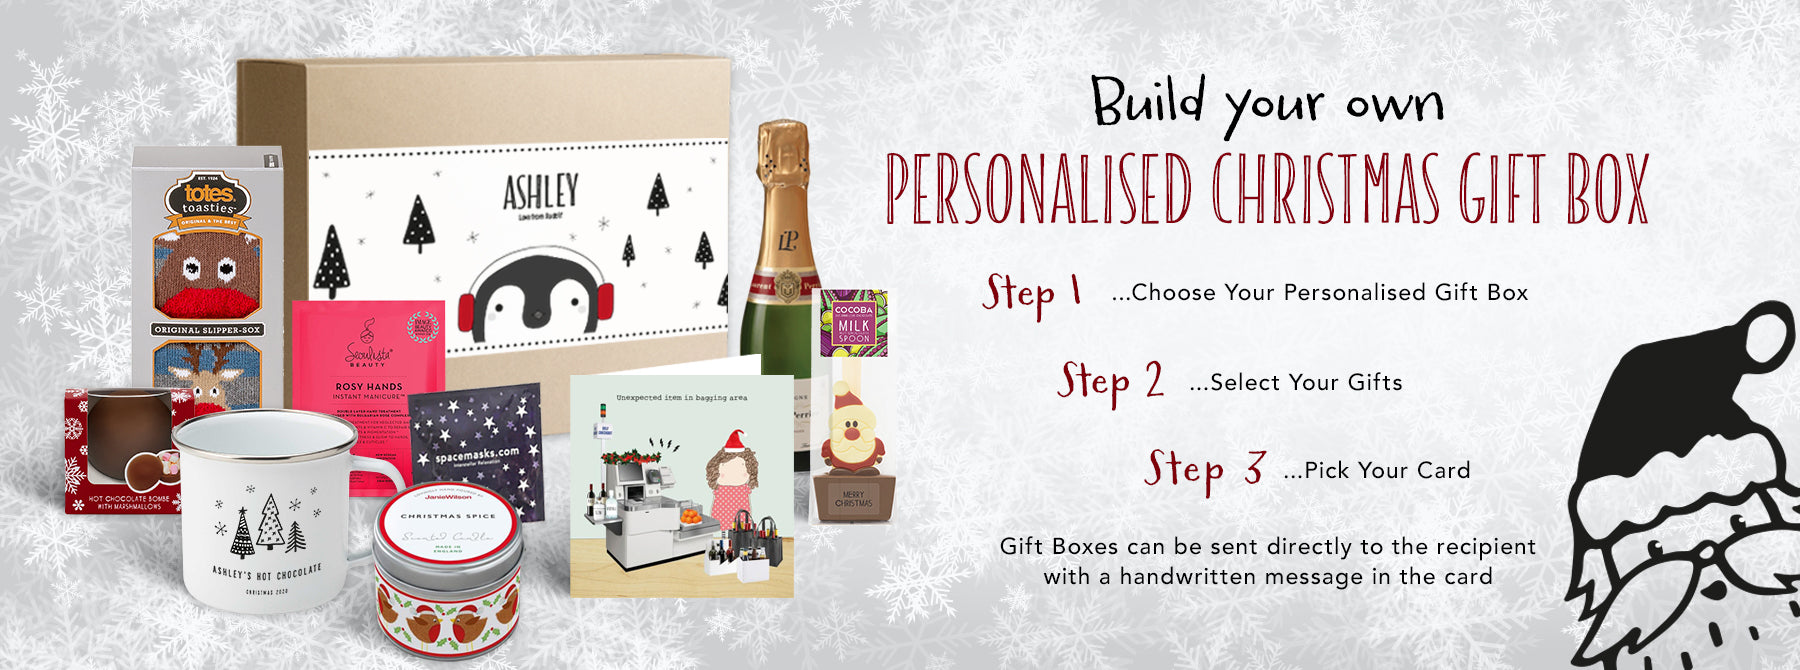 Build A Christmas Gift Box